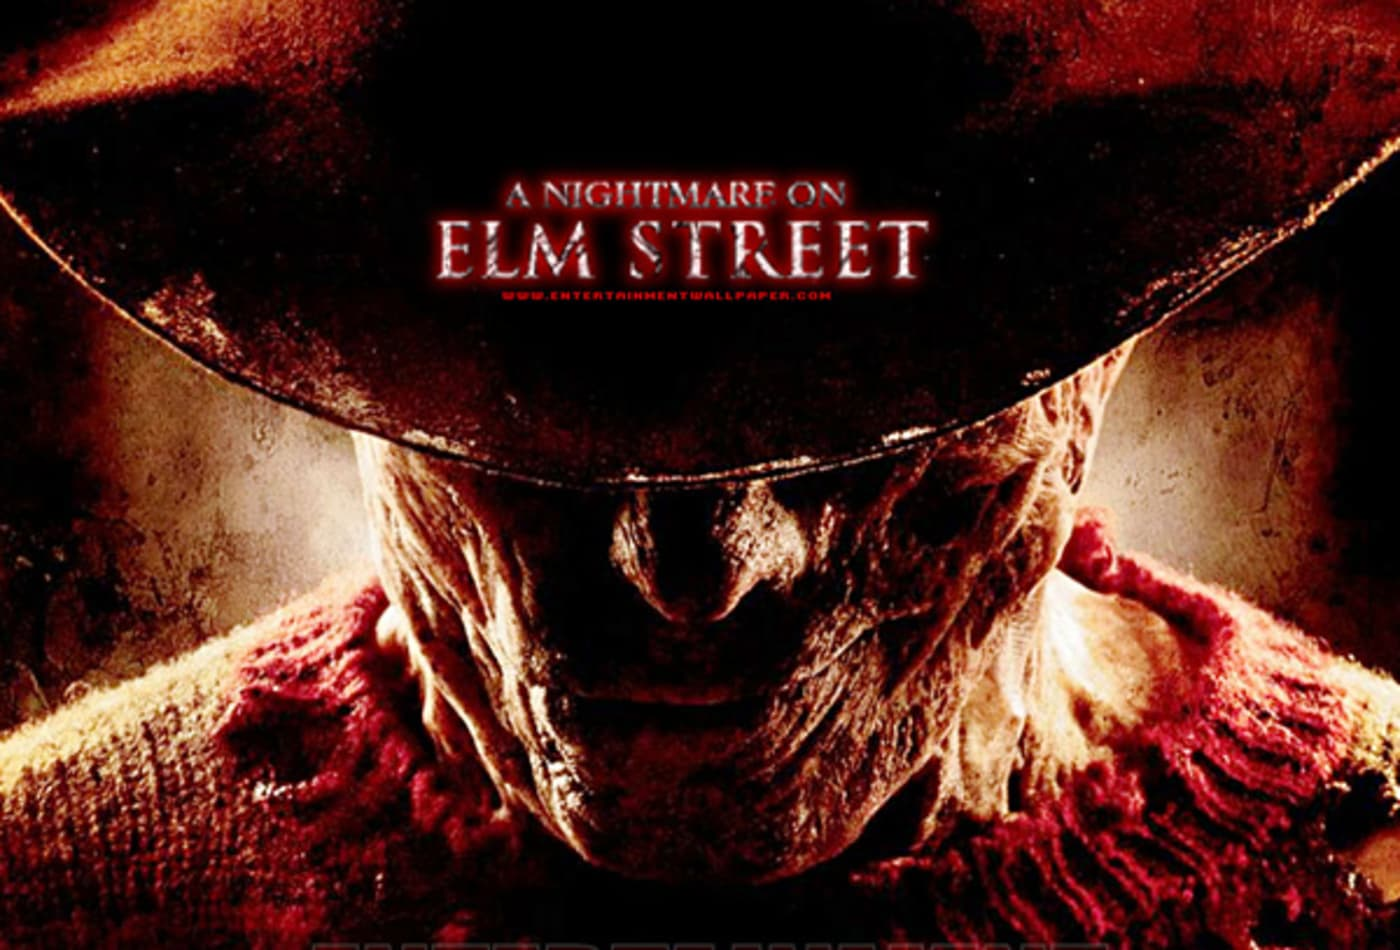 CNBC-nightmare-on-elm-street.jpg